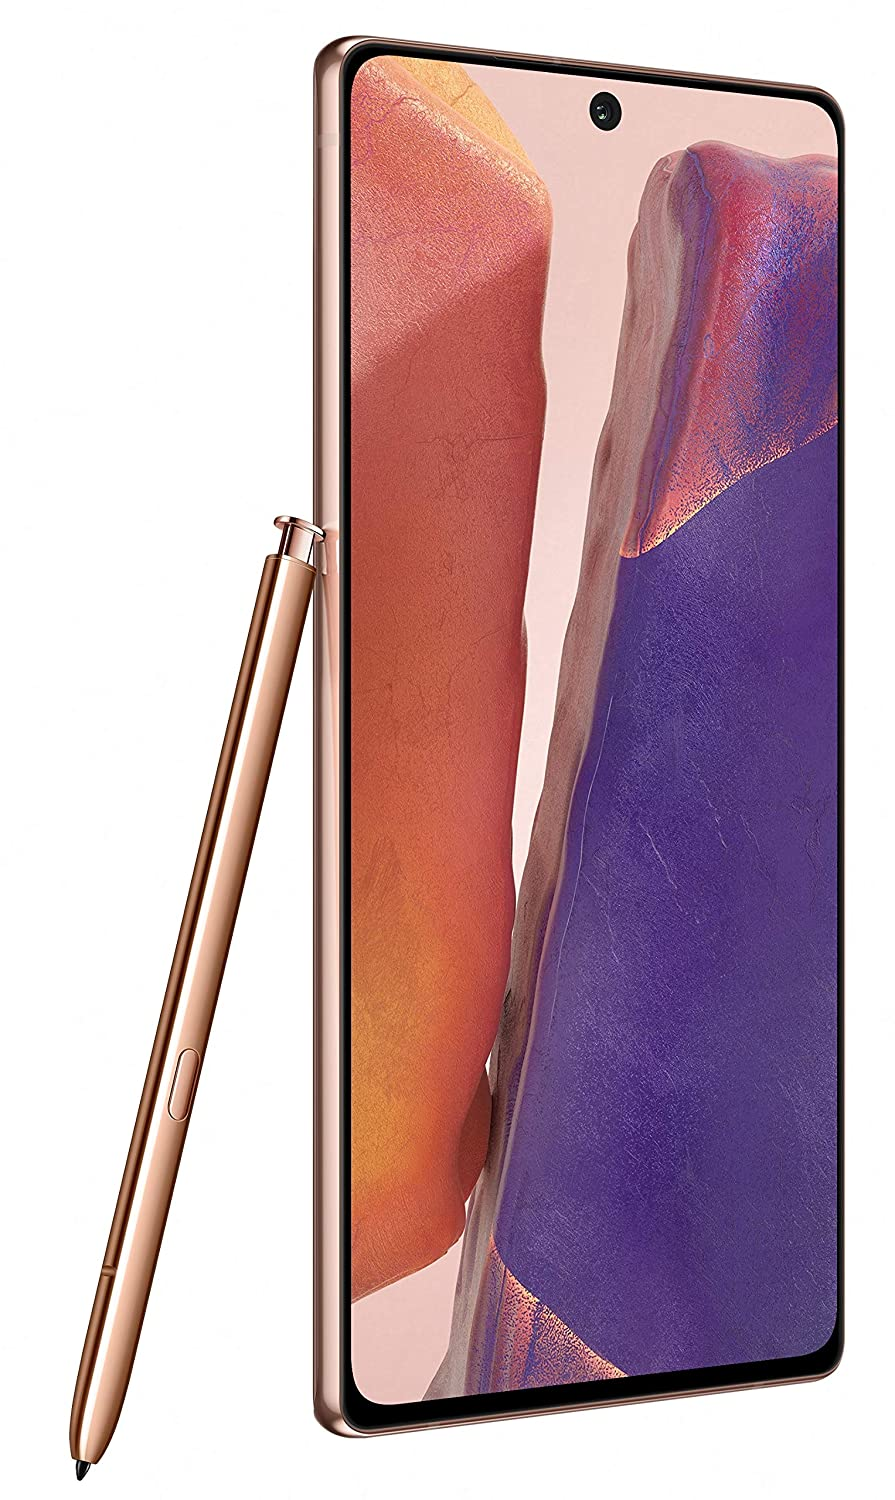 Samsung Galaxy Note 20 (Mystic Bronze, 8GB RAM, 256GB Storage)